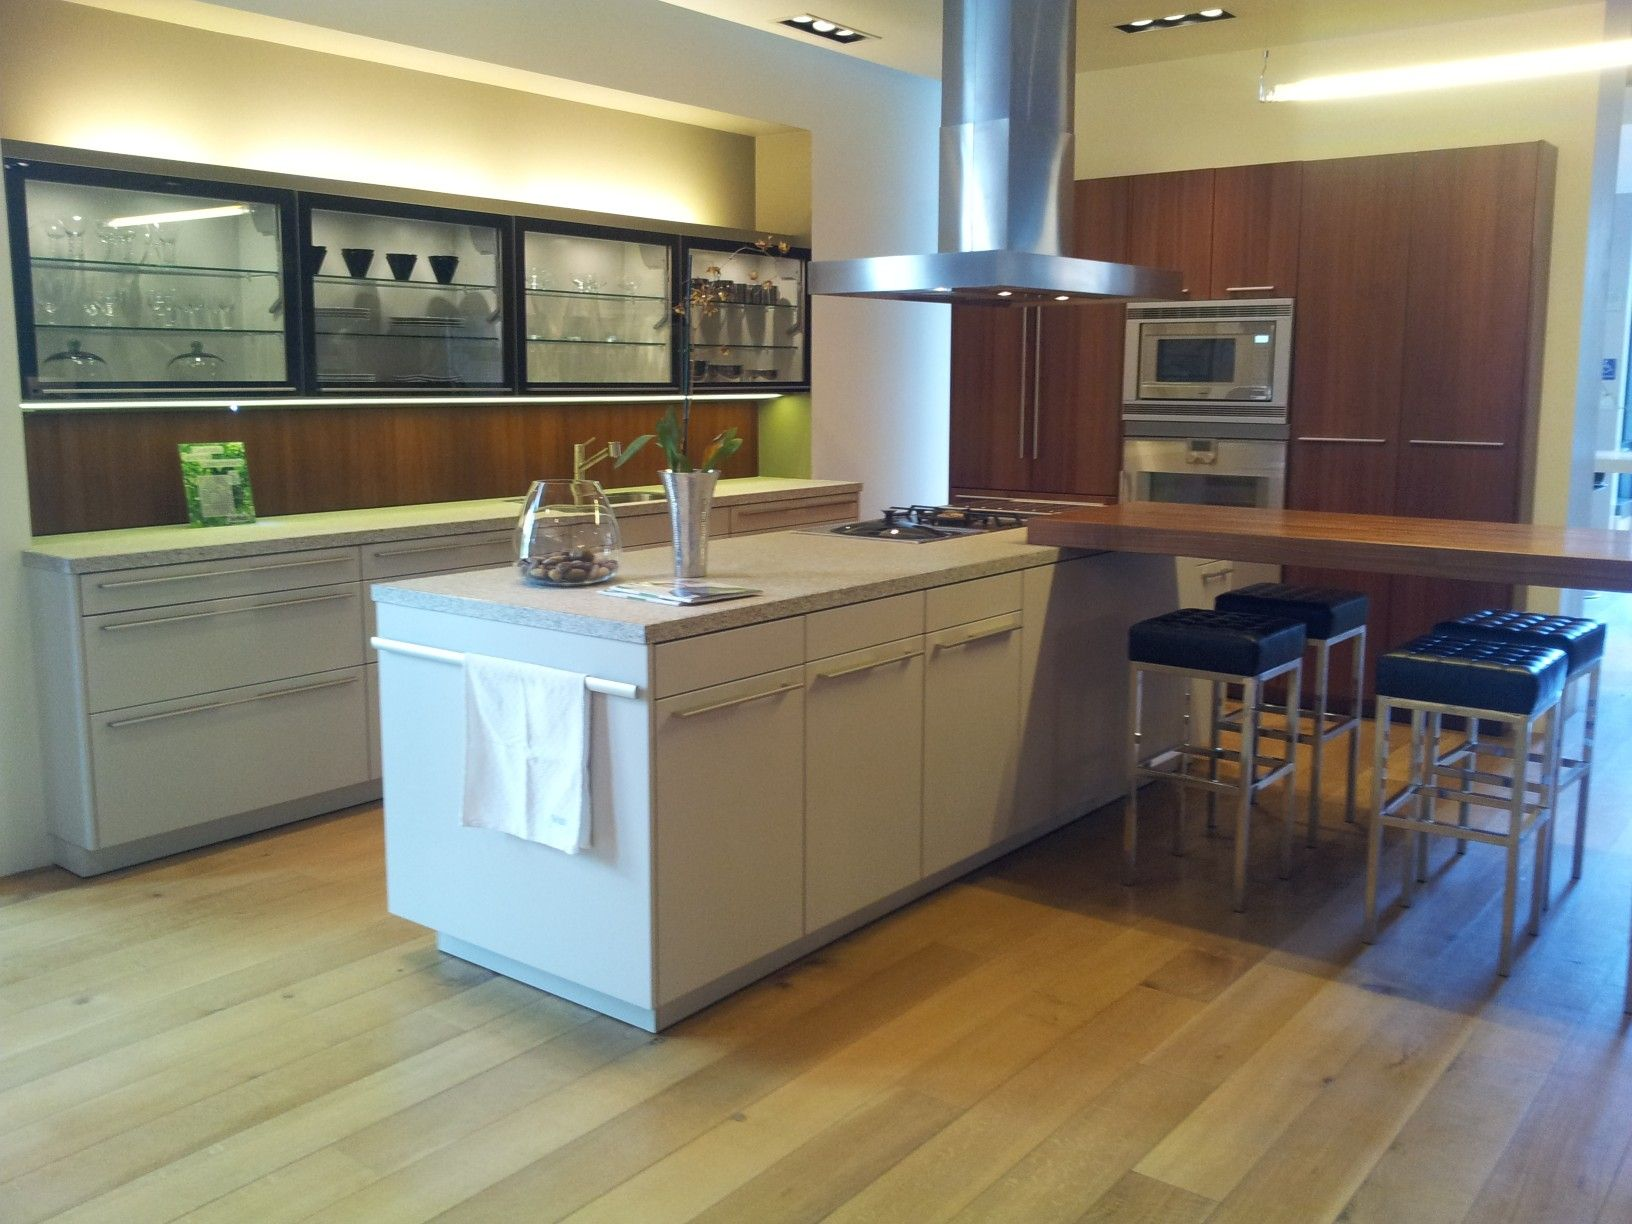 Modern Siematic Kitchen Cabinetry, Smoke Glass Wall Cabinets. Veneer Tall  Cabinets And Wood Plank